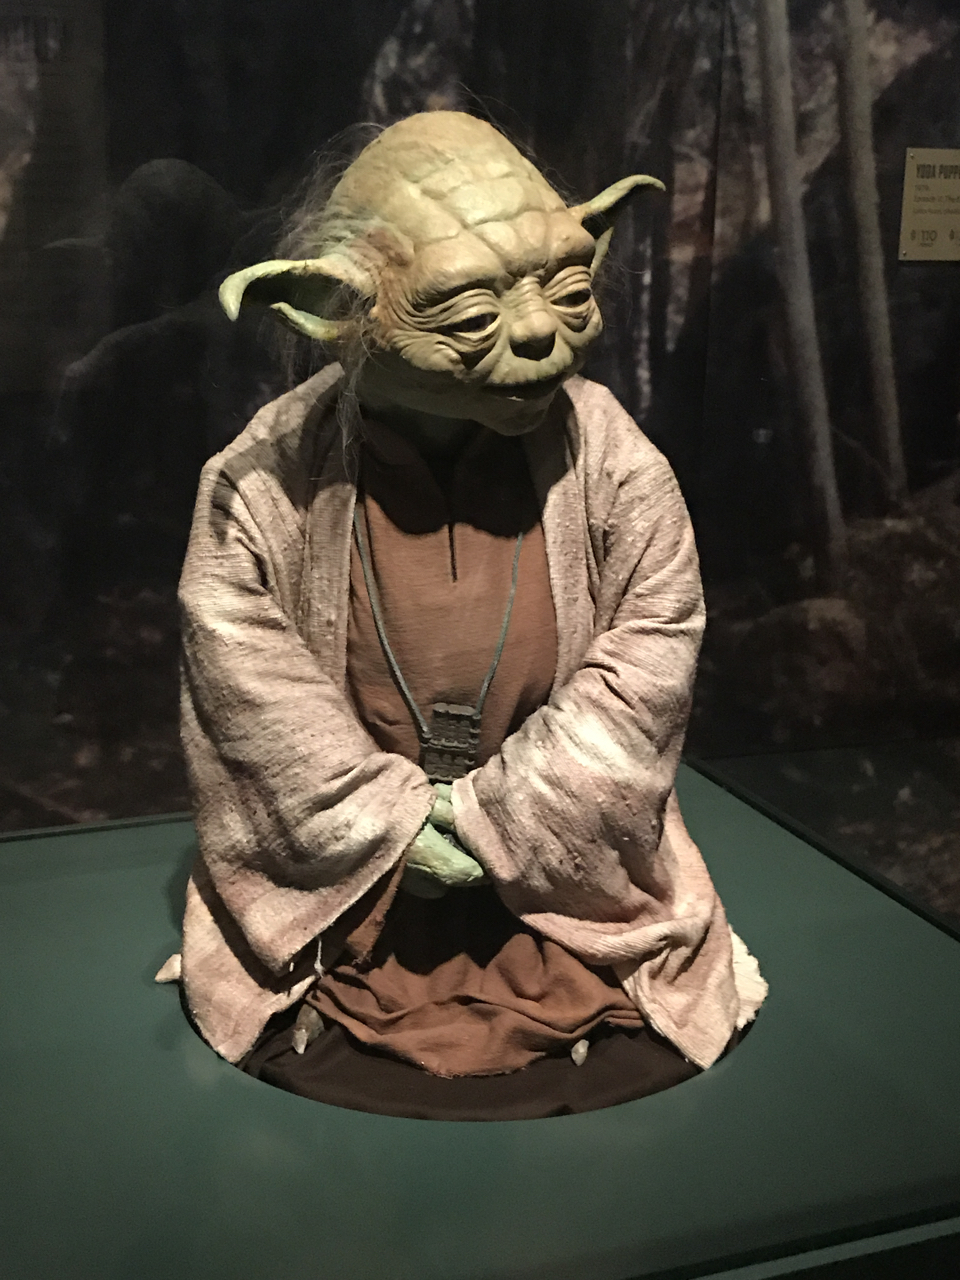 Yoda's in the House! Part of the Star Wars: Power of the Costume exhibit